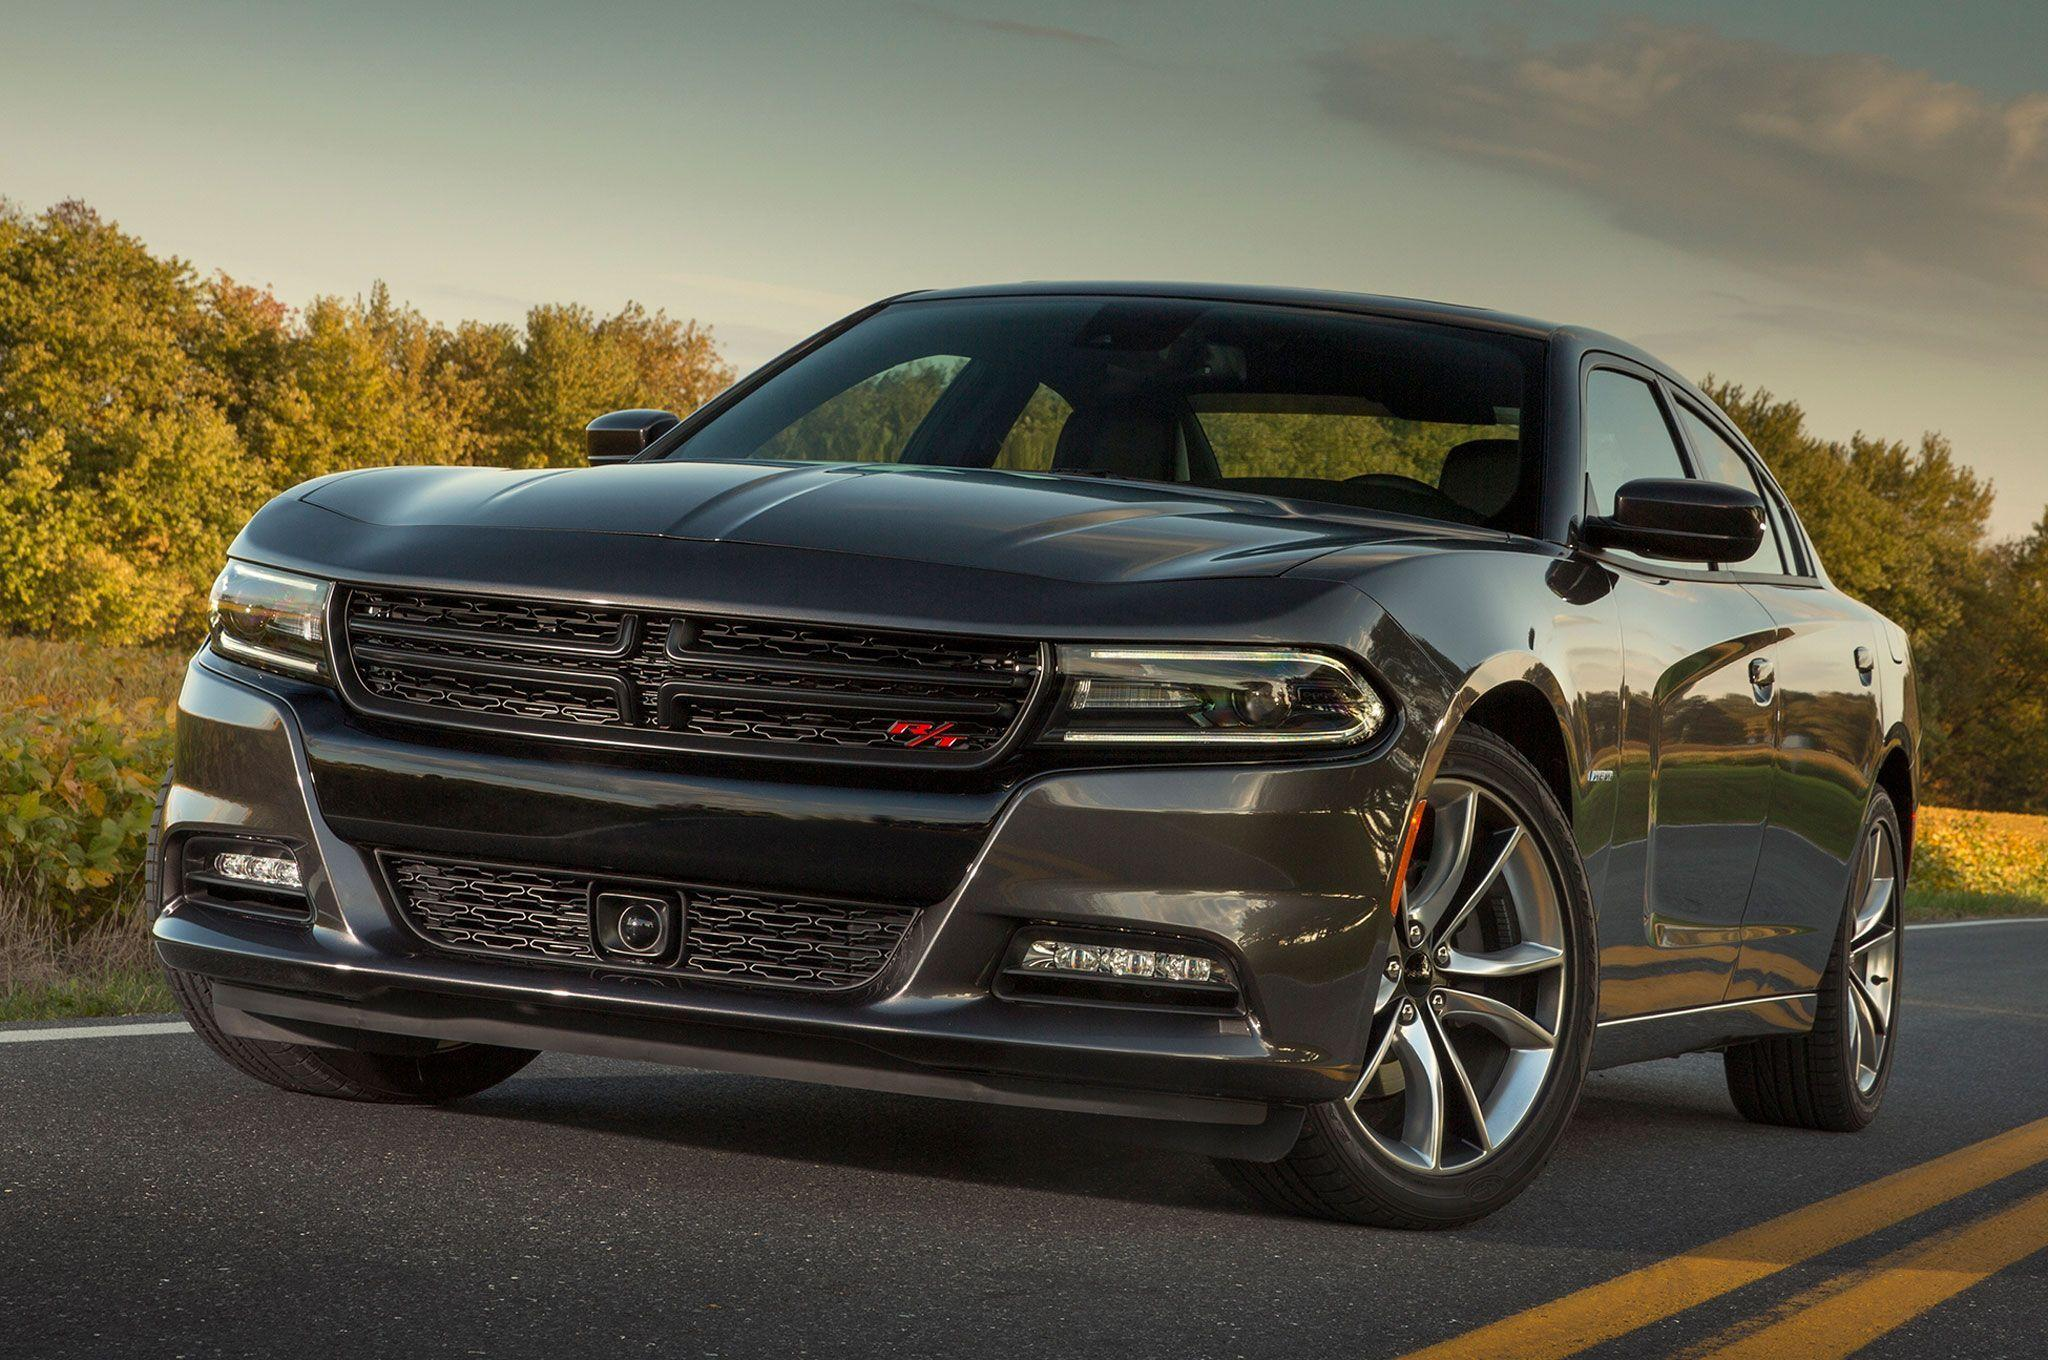 2015 Dodge Charger R/T, SRT 392, SXT AWD First Drive